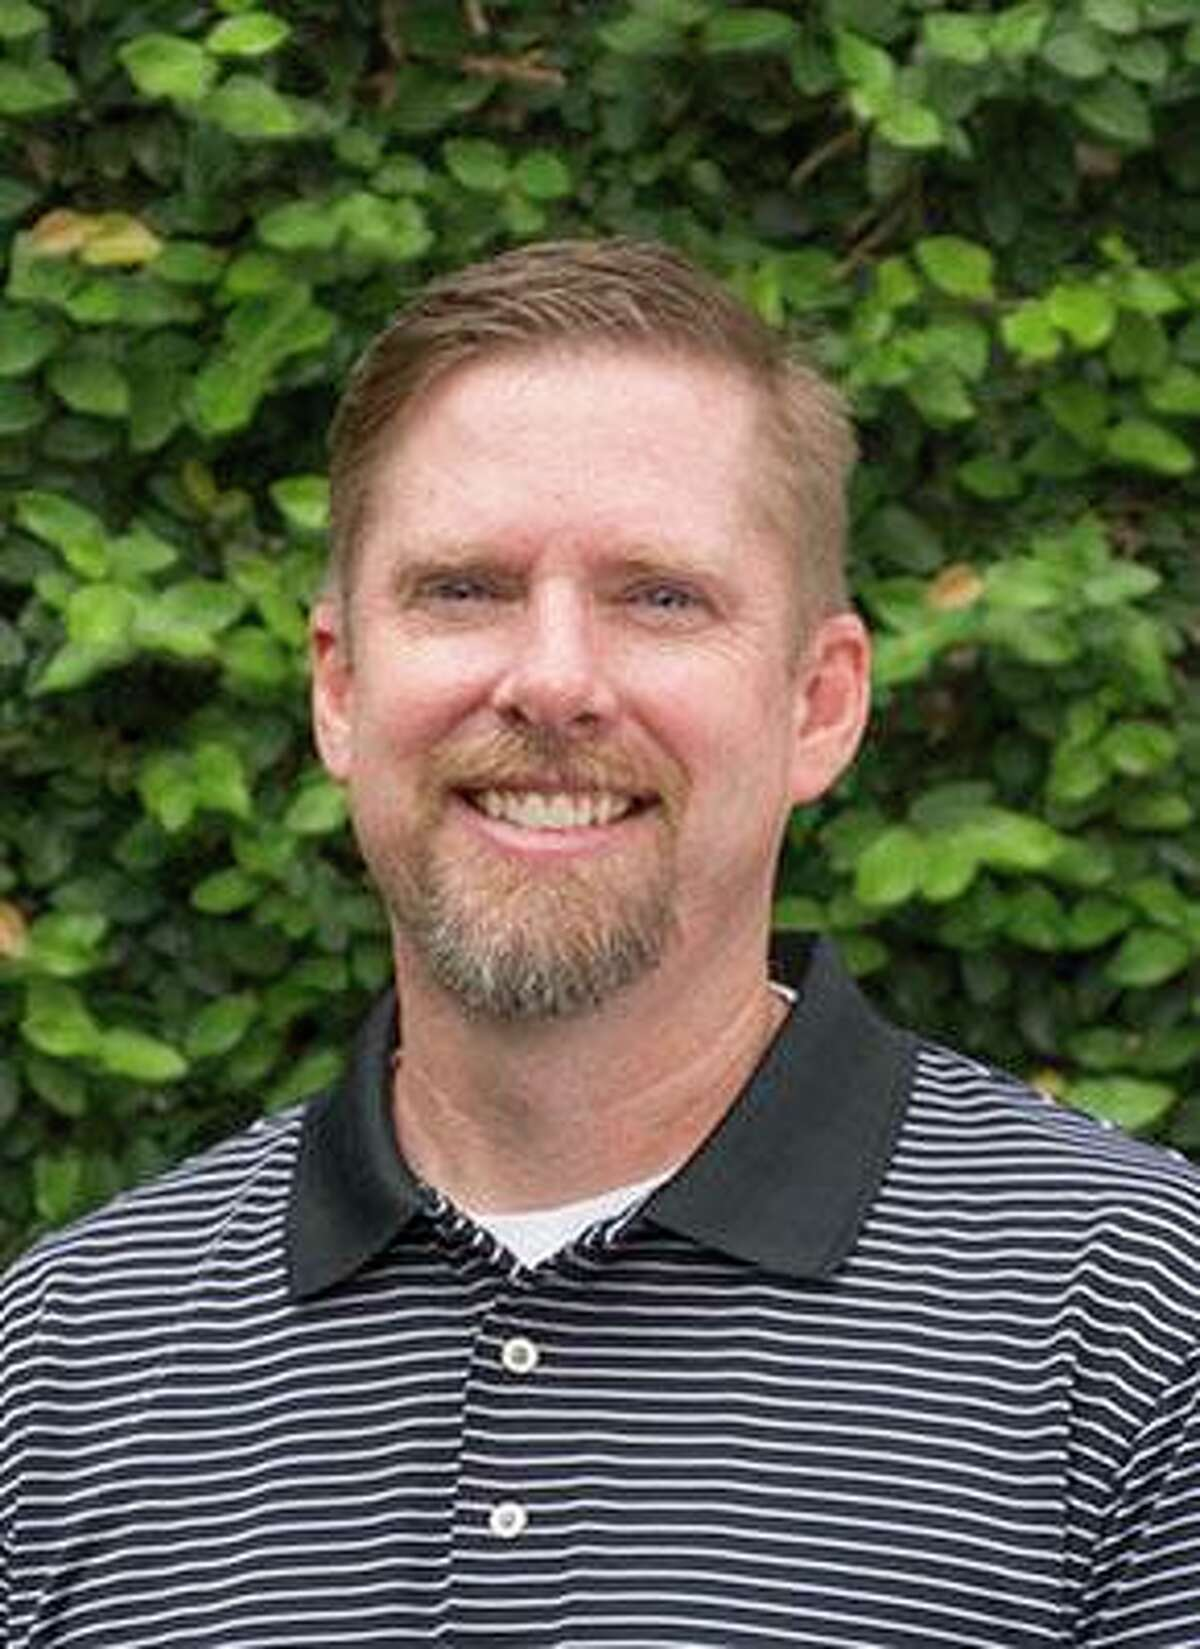 David Beyer was appointed by the North East ISD board on Jan. 23, 2019 to fill the District 4 seat.